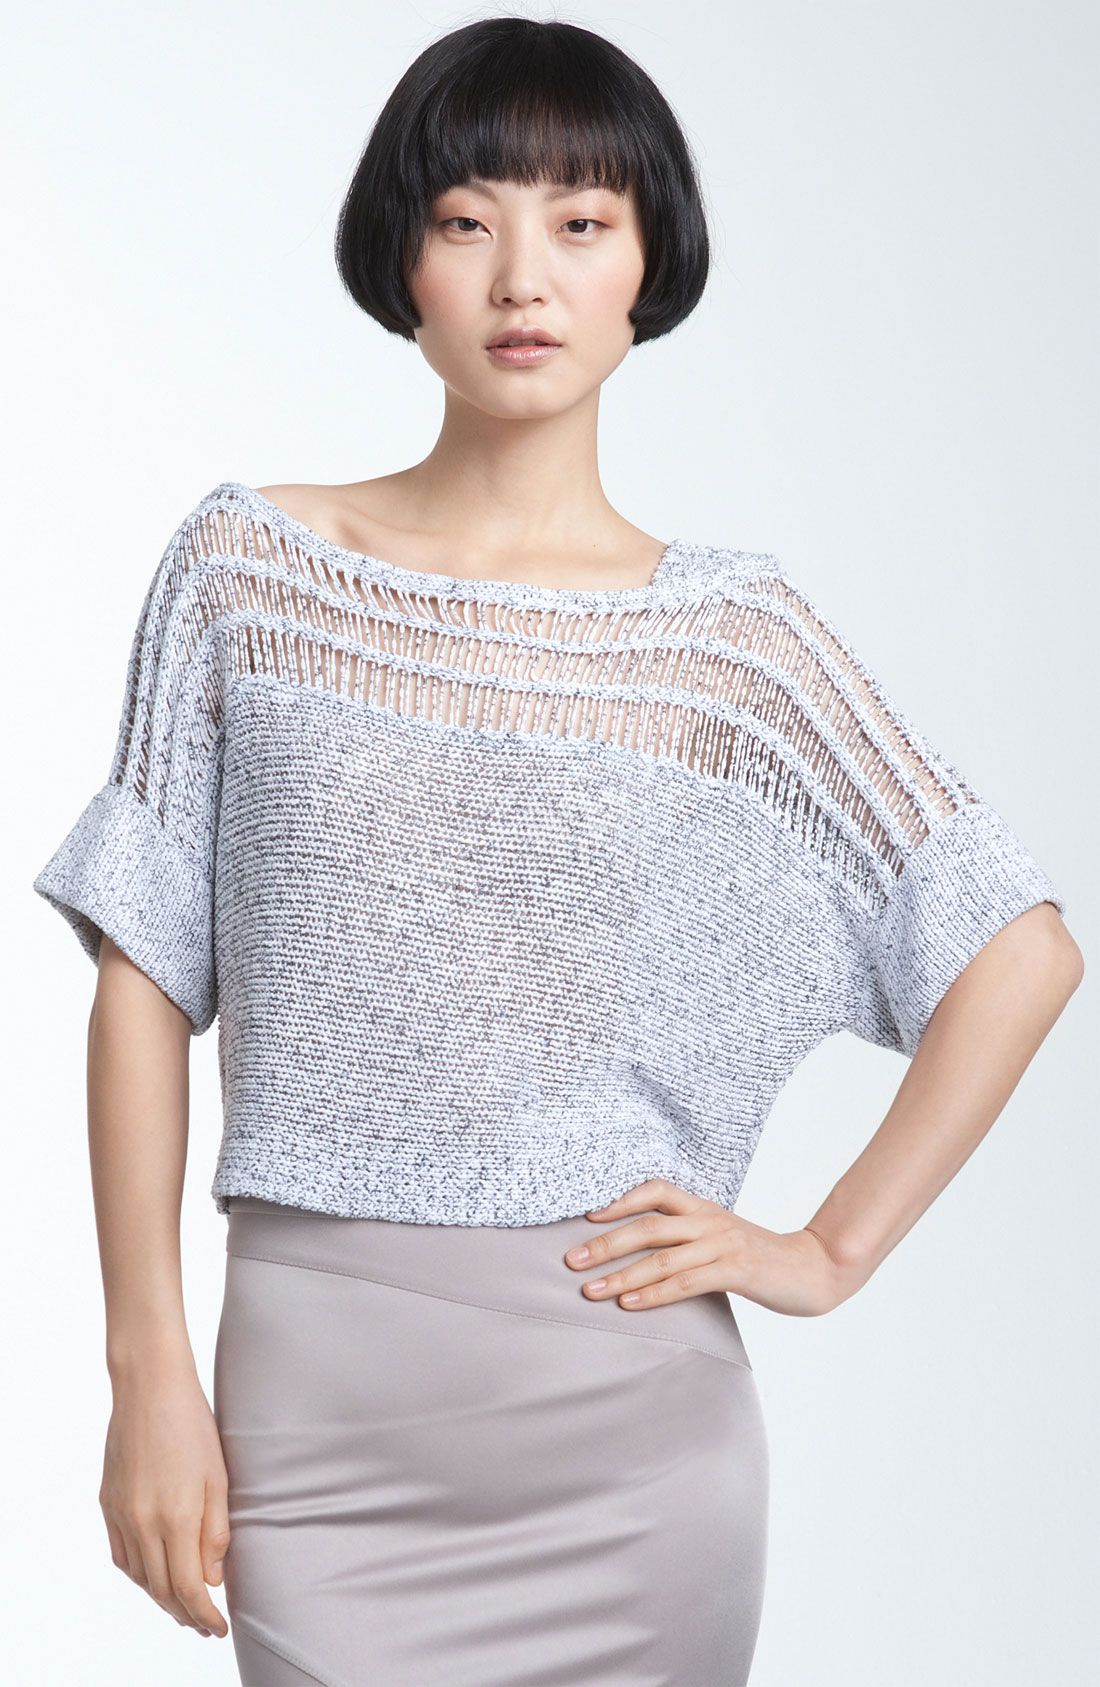 Free shipping and returns on vpl peturus open knit sweater at free shipping and returns on vpl peturus open knit sweater at nordstrom bankloansurffo Choice Image